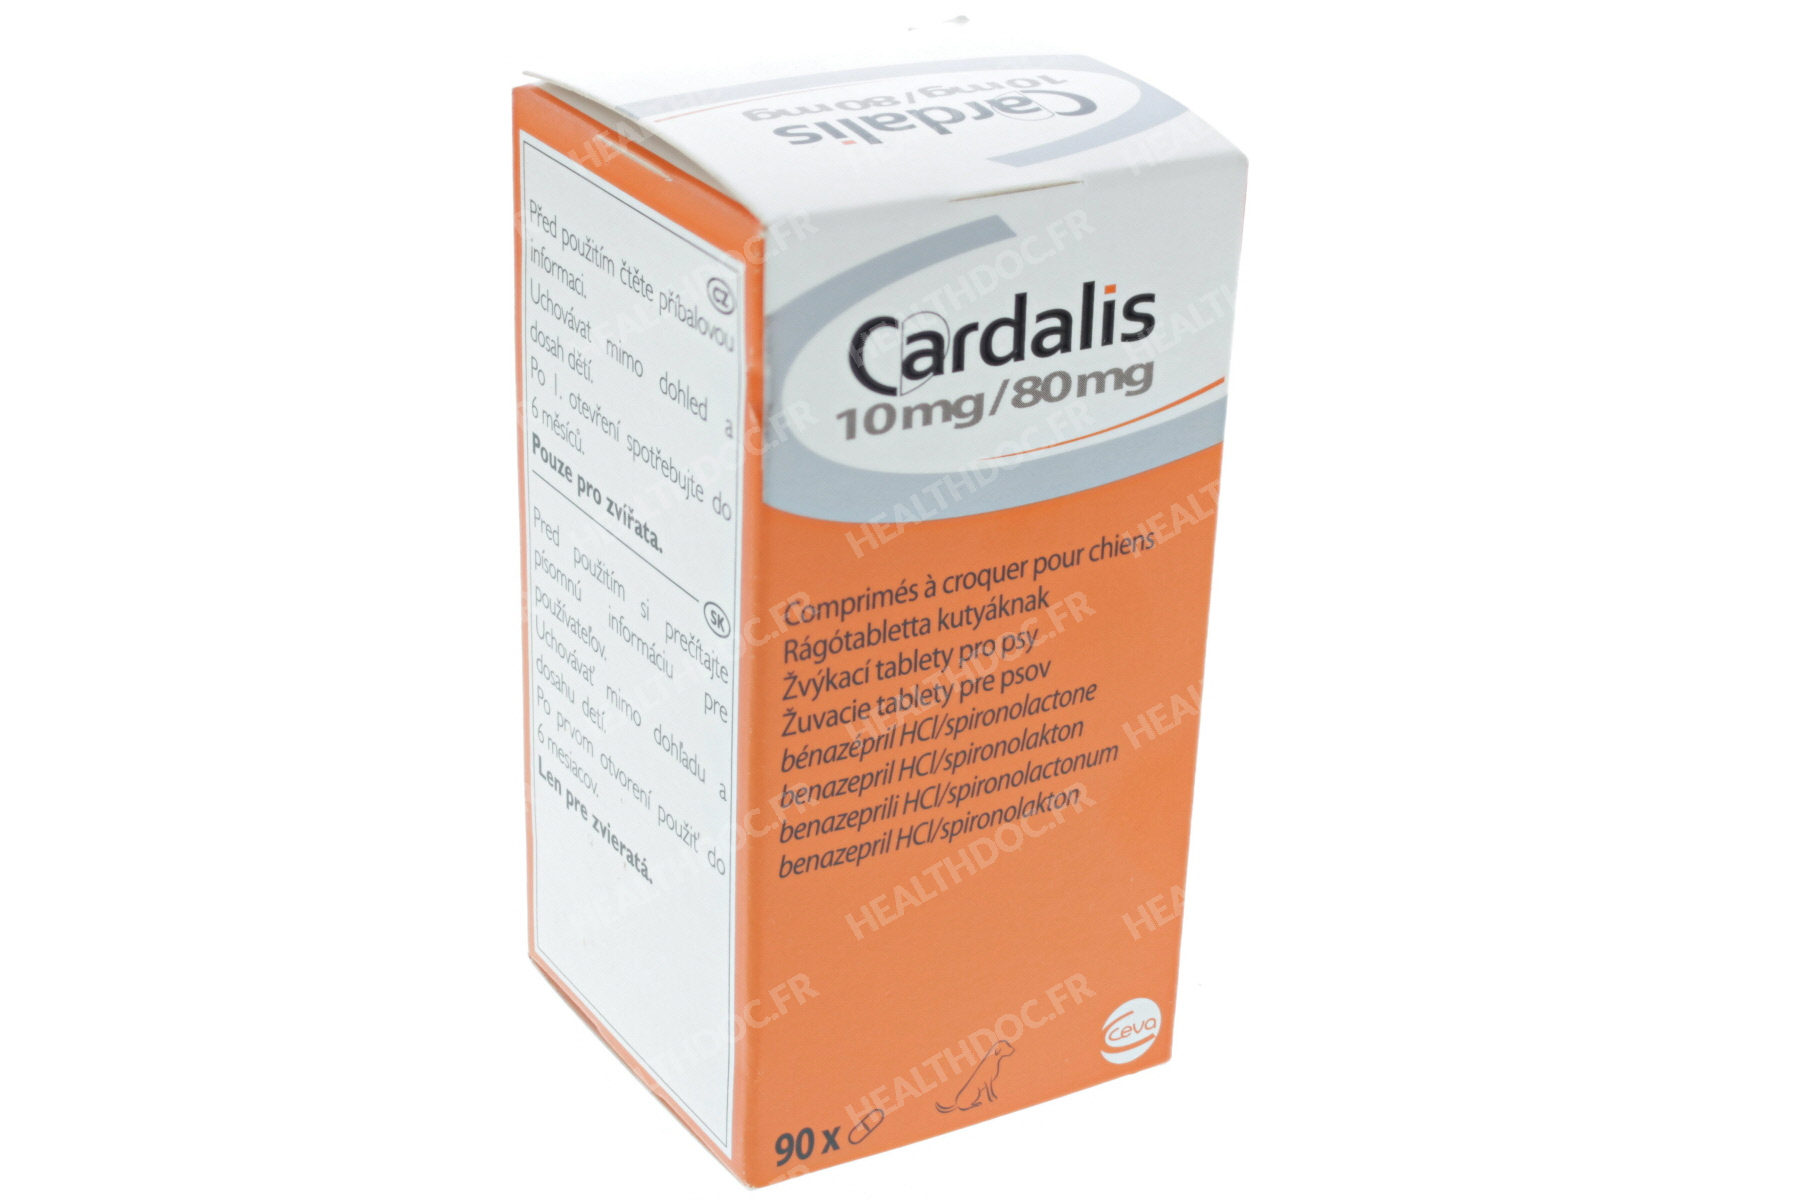 CARDALIS 10 MG/80 MG COMPRIMES A CROQUER POUR CHIENS